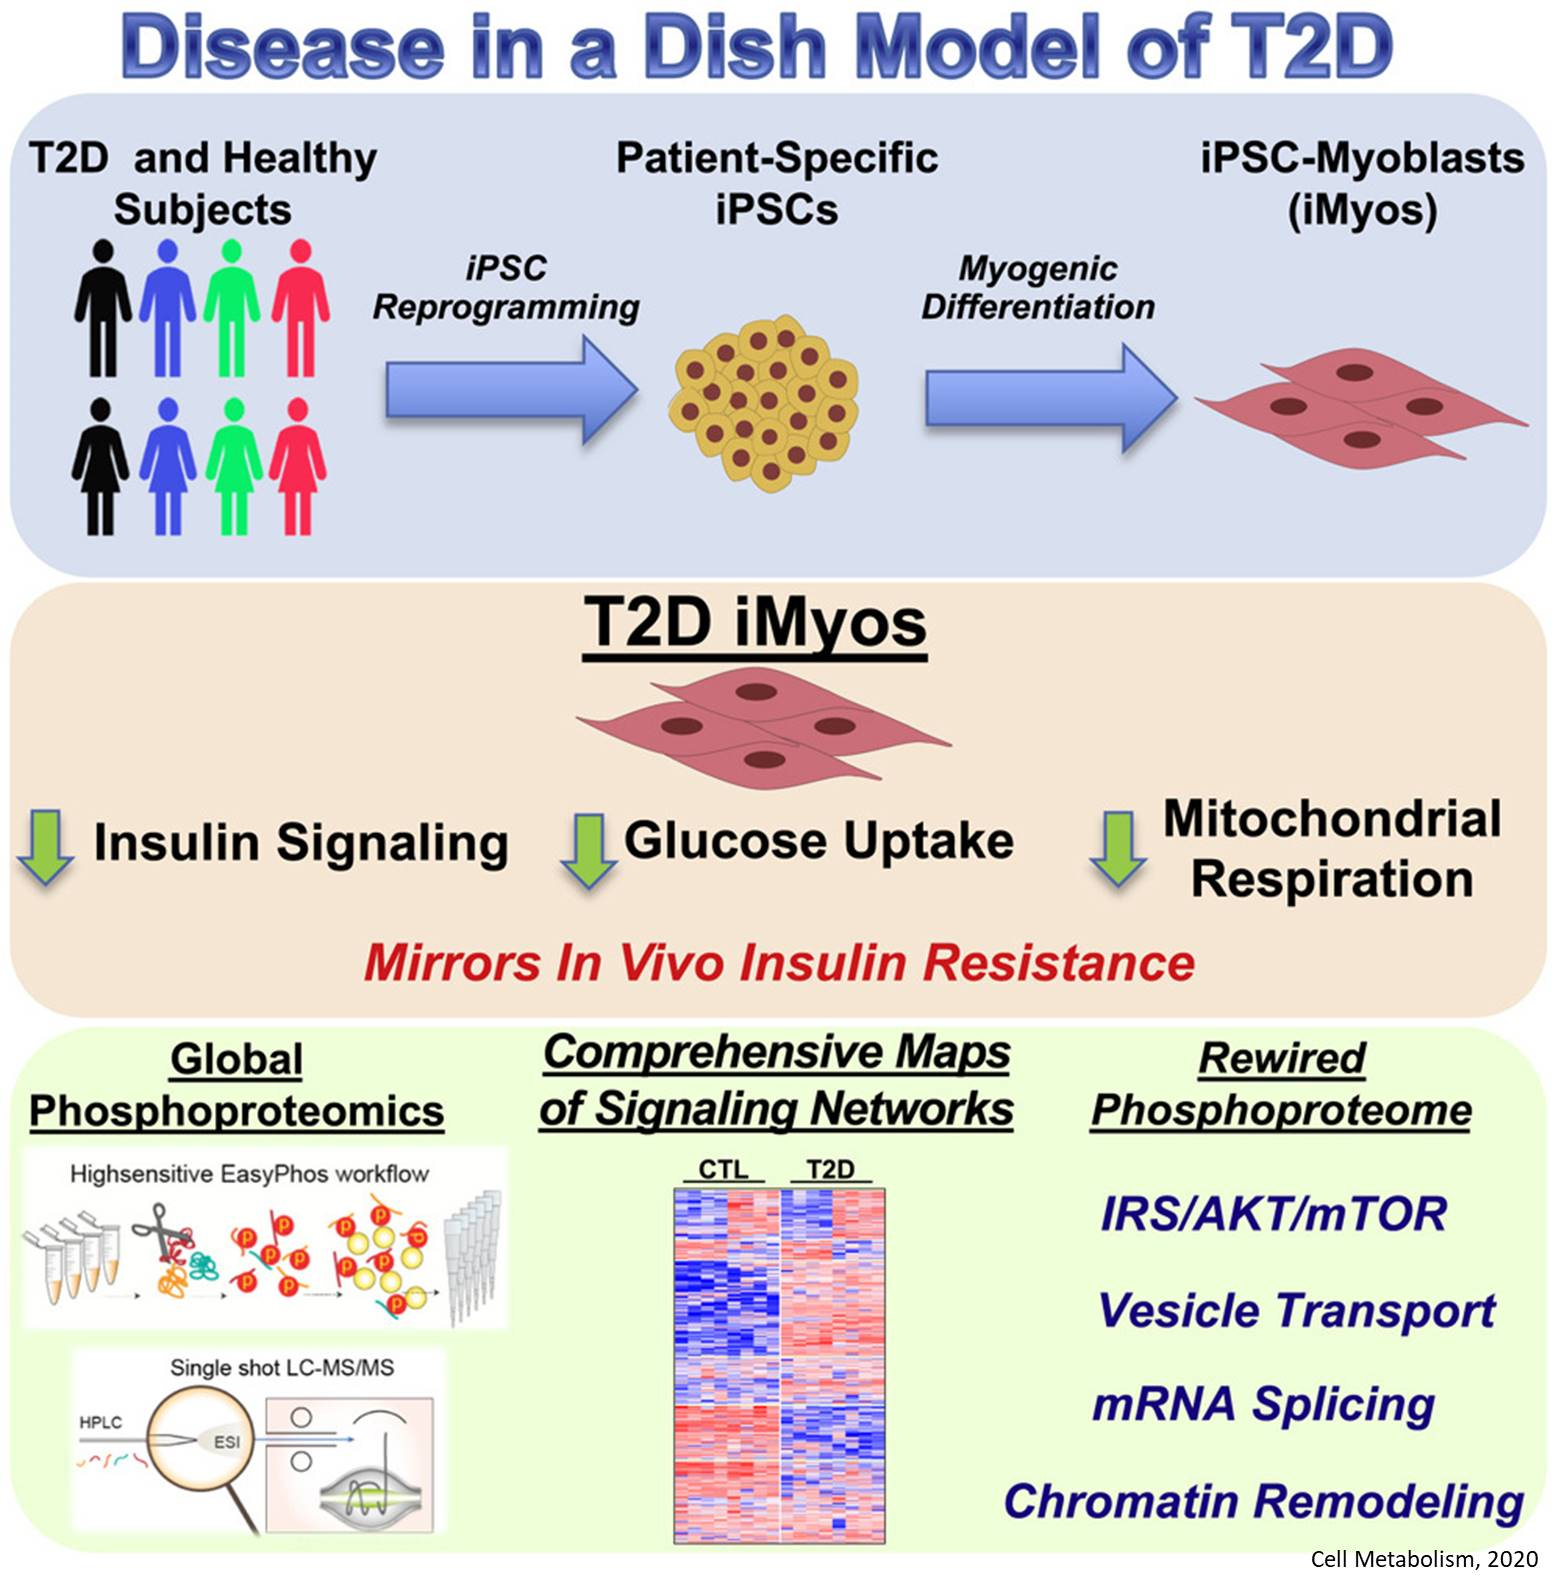 Dysregulated Protein Phosphorylation Underlies Muscle Insulin Resistance in Type 2 Diabetes